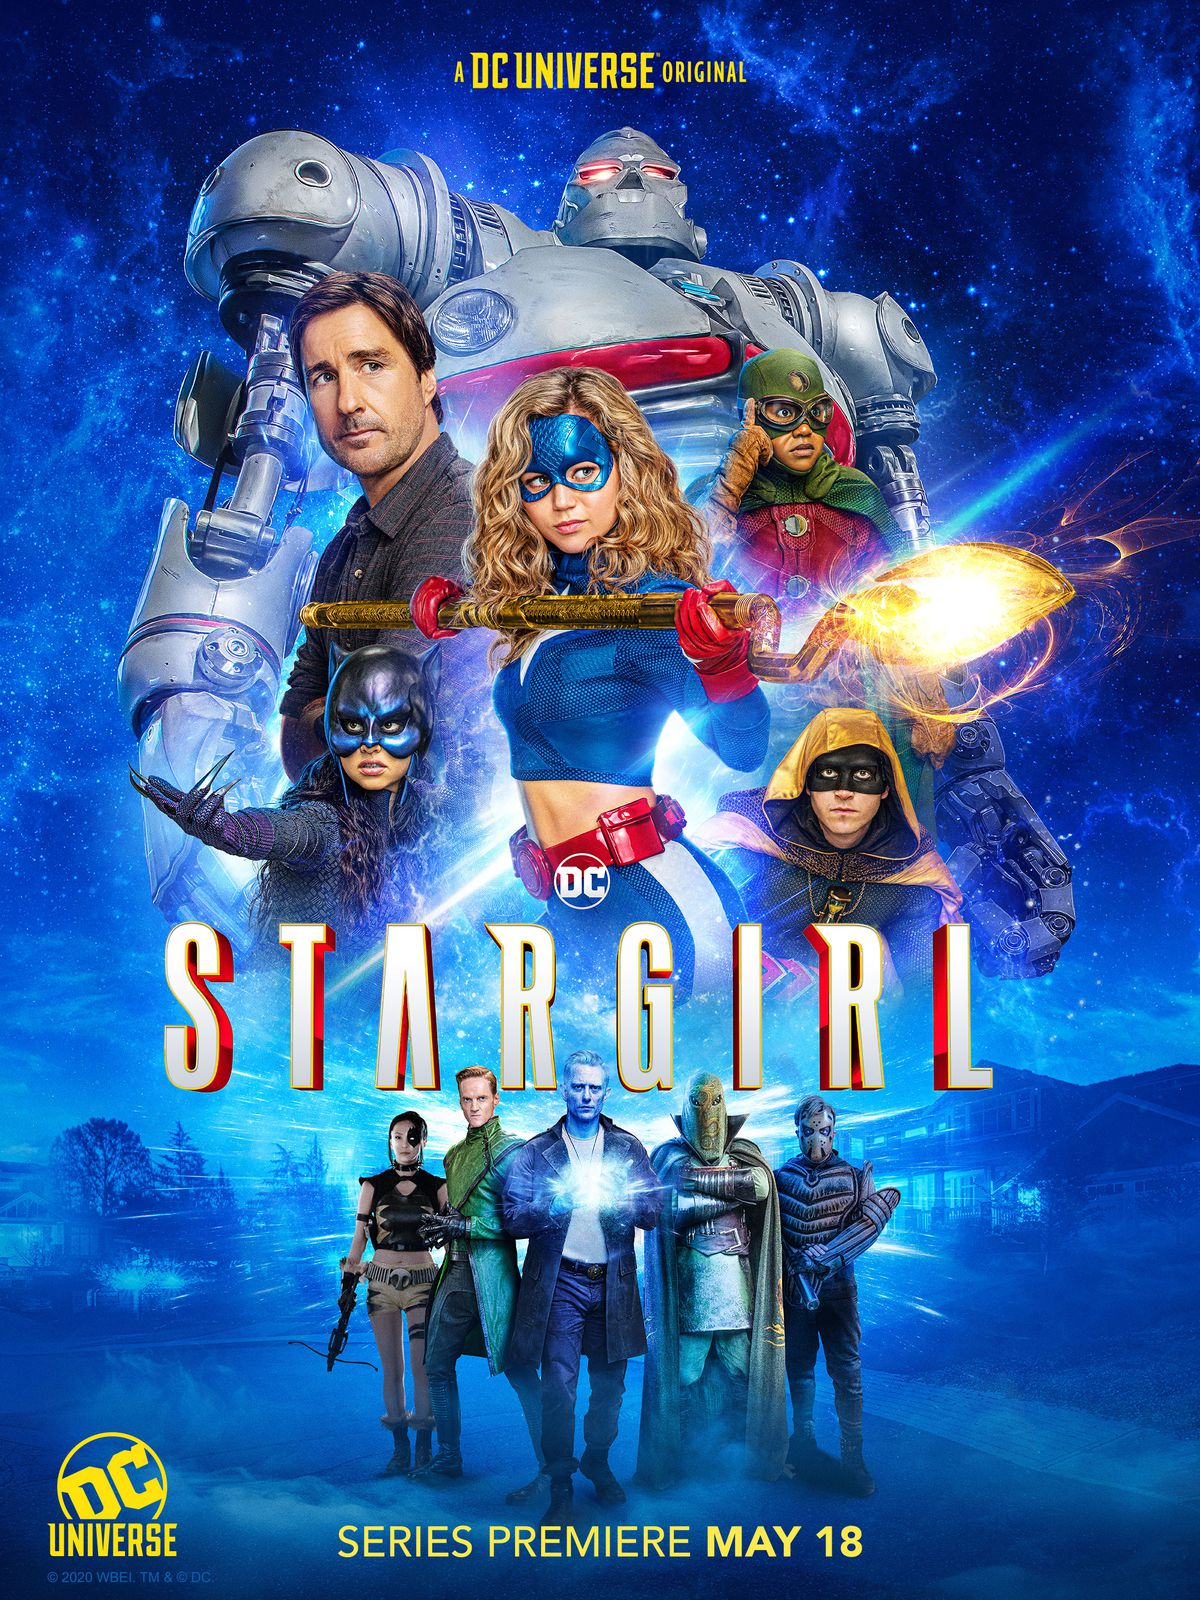 The cast of Stargirl on a poster, including STRIPE the robot exosuit, Pat Dugan, Stargirl, Doctor Mid-Nite, Wildcat, Hourman, and various villains.